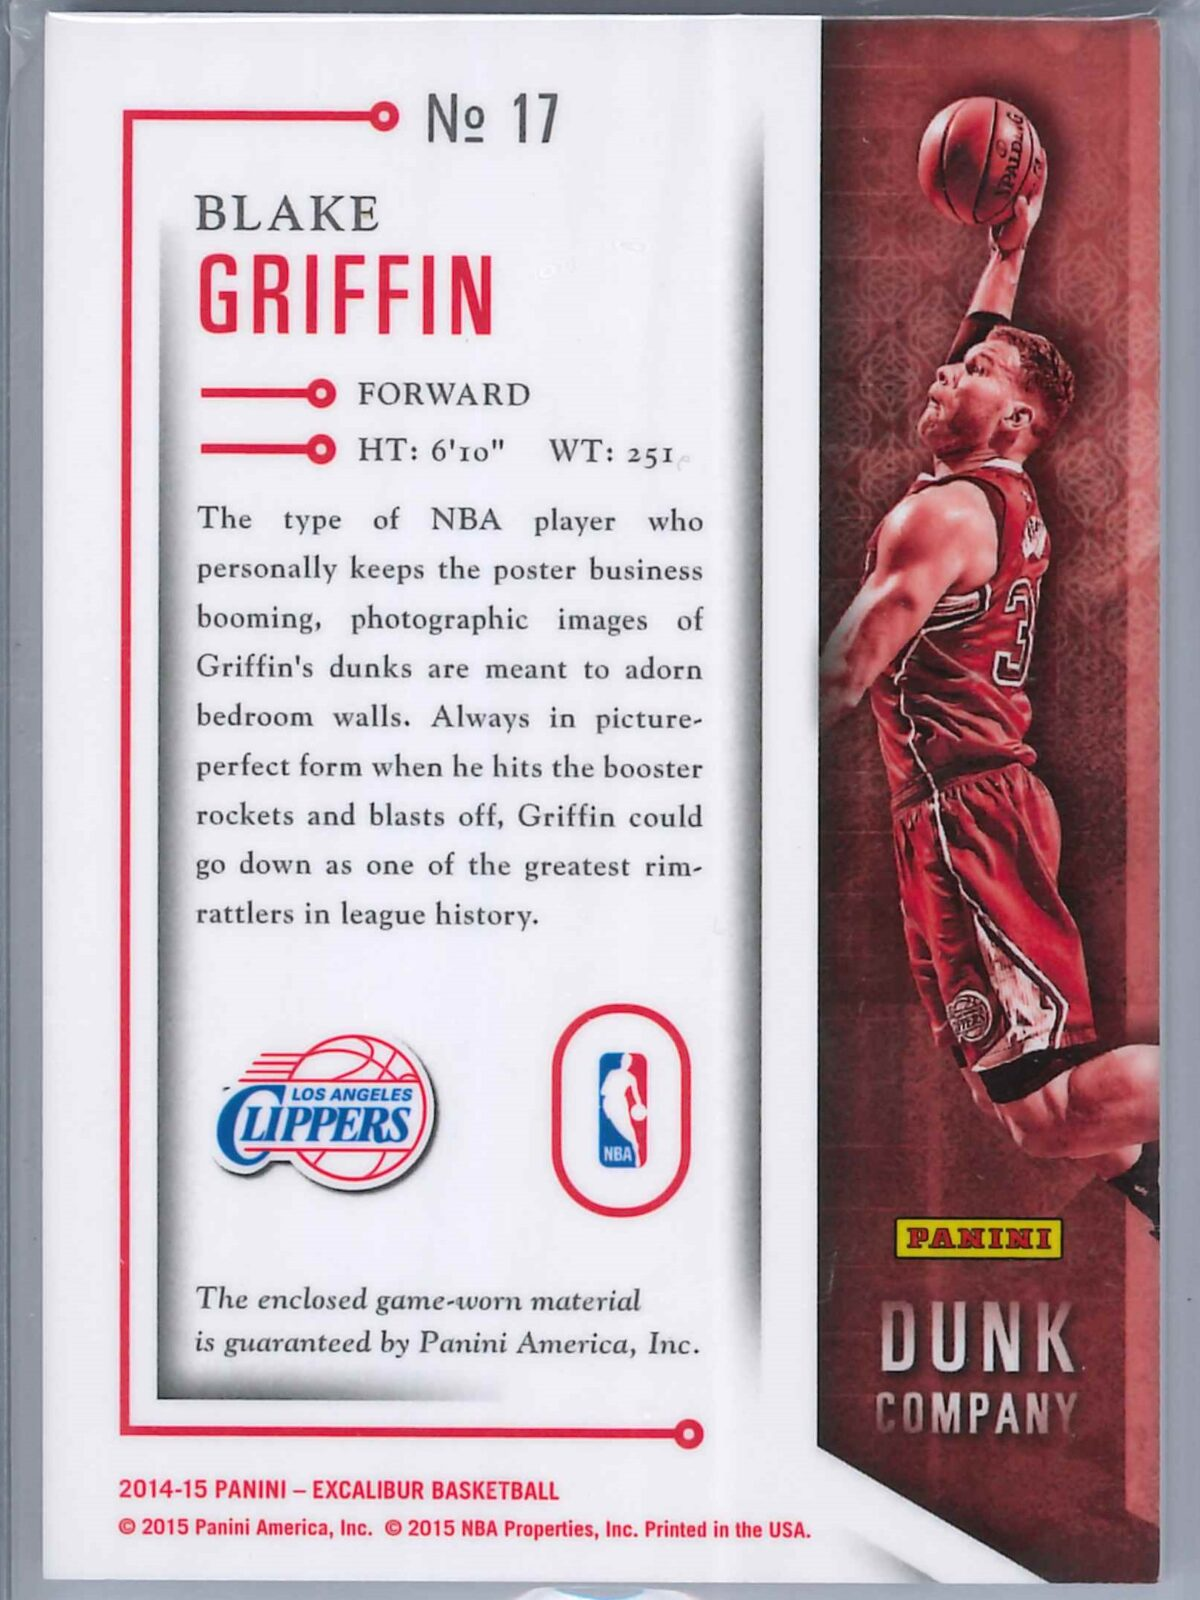 Blake Griffin Panini Excalibur 2014-15 Dunk Co Patch Gold 04/25